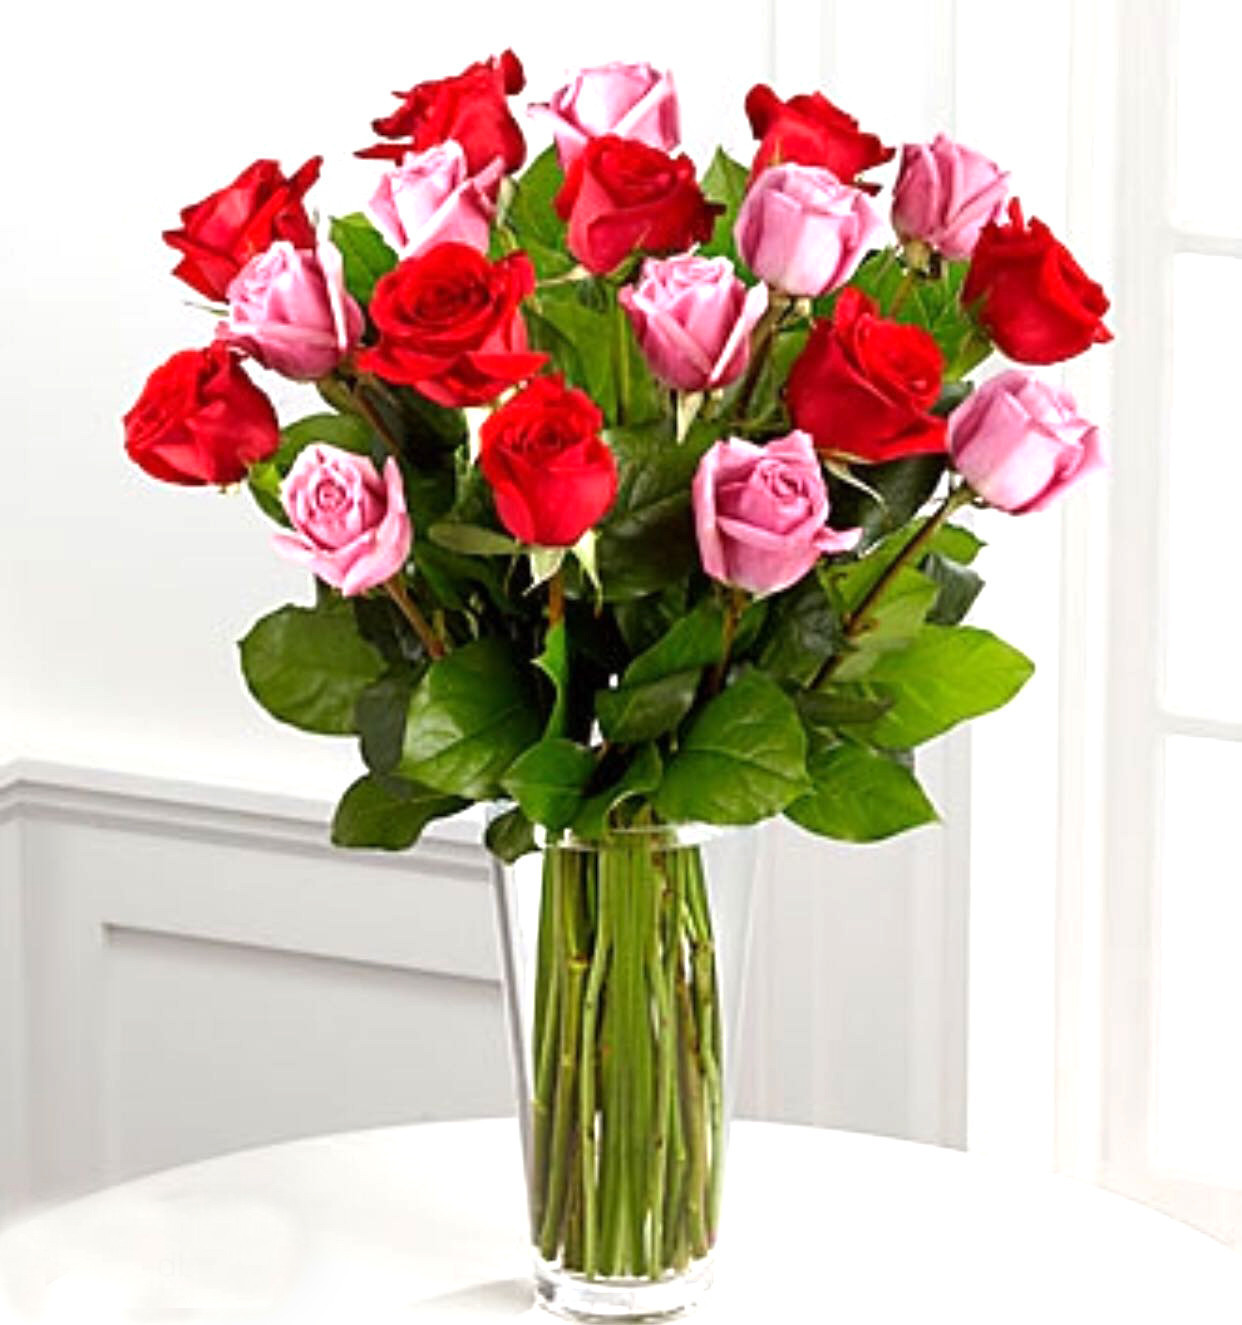 vase funeral home of 18best of colorful flowers pictures clip arts coloring pages throughout funeral colorful flowers pictures lovely pink roses with wax flowerh vases in a vase floweri 0d white